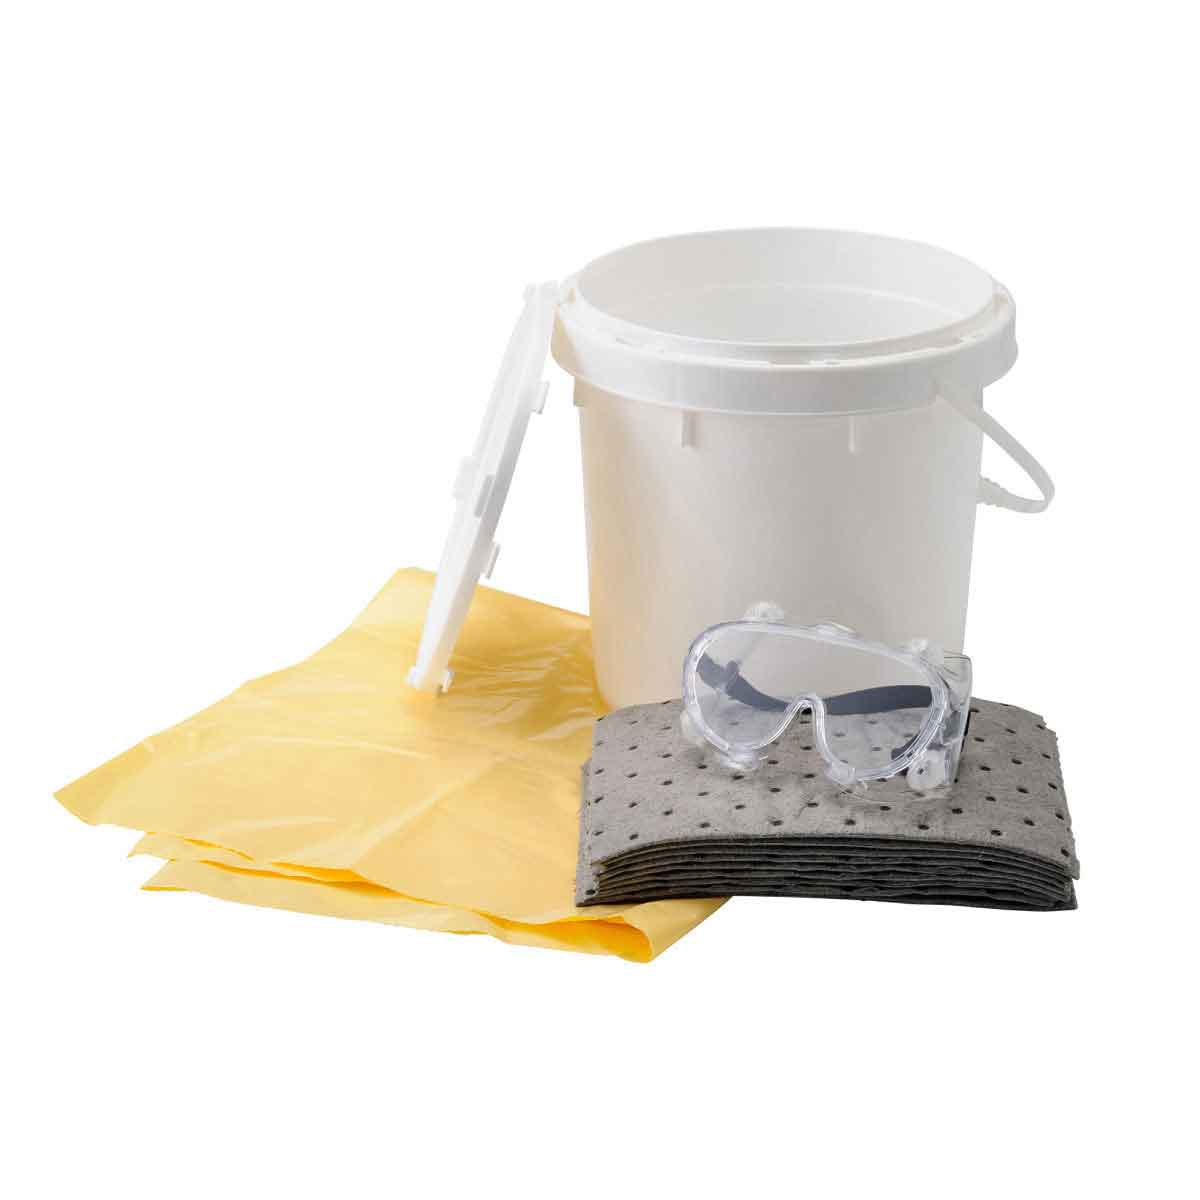 2 GALLON UNIVERSAL SRP SPILL KIT